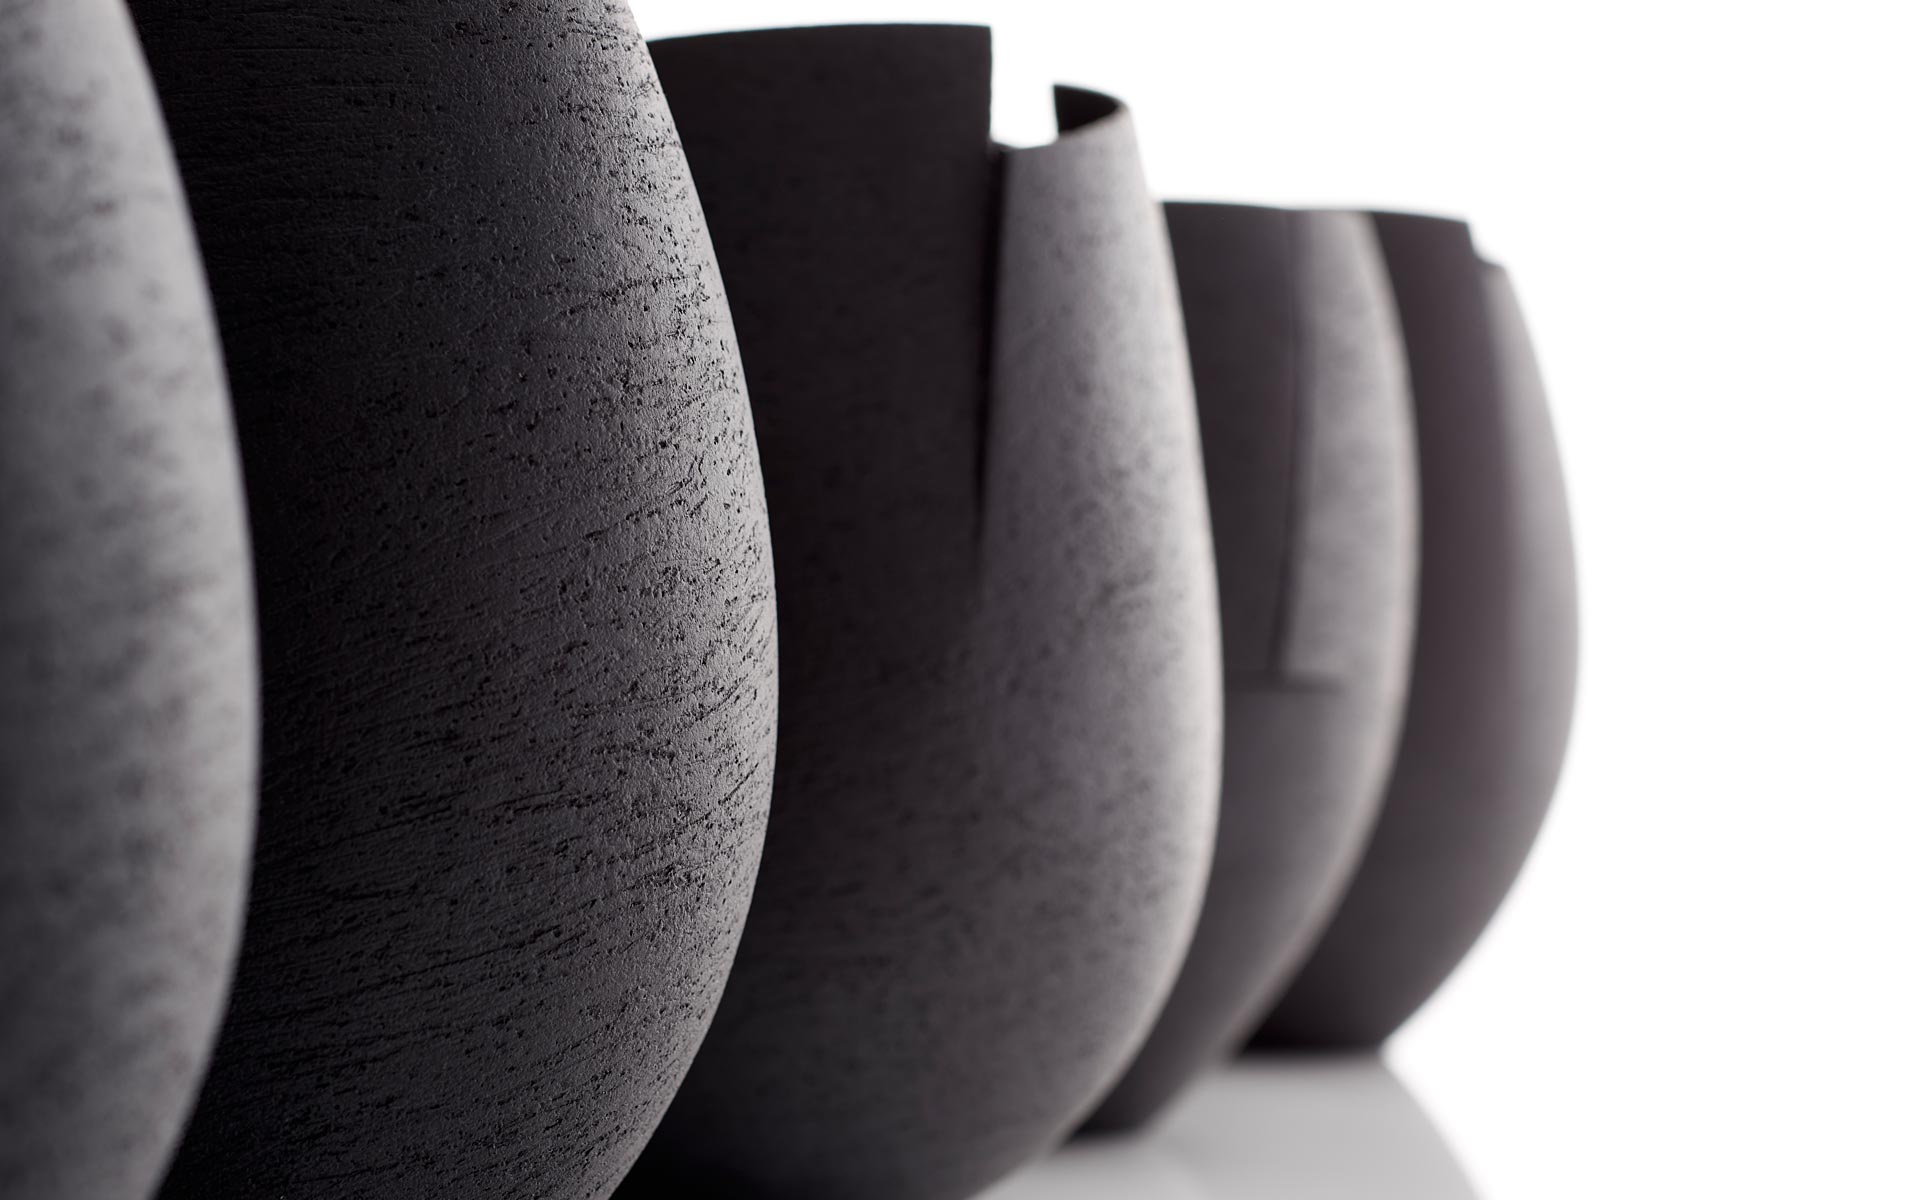 Group of Small Black Cut Vessels - Detail